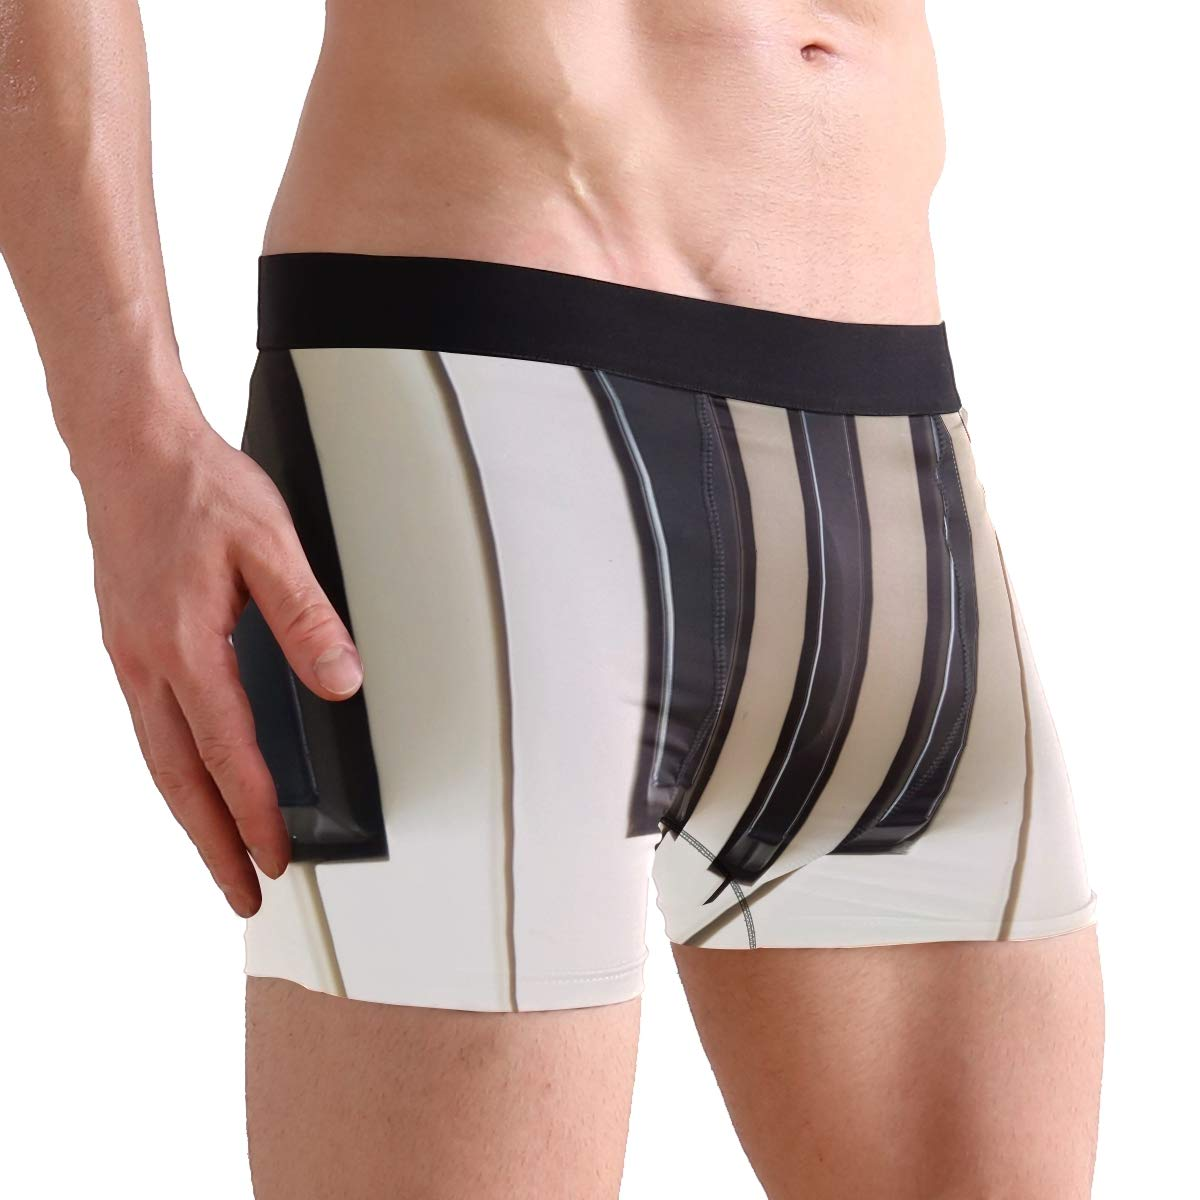 Jereee The Old Piano Pattern Mens Underwear Soft Polyester Boxer Brief for Men Adult Teen Children Kids S